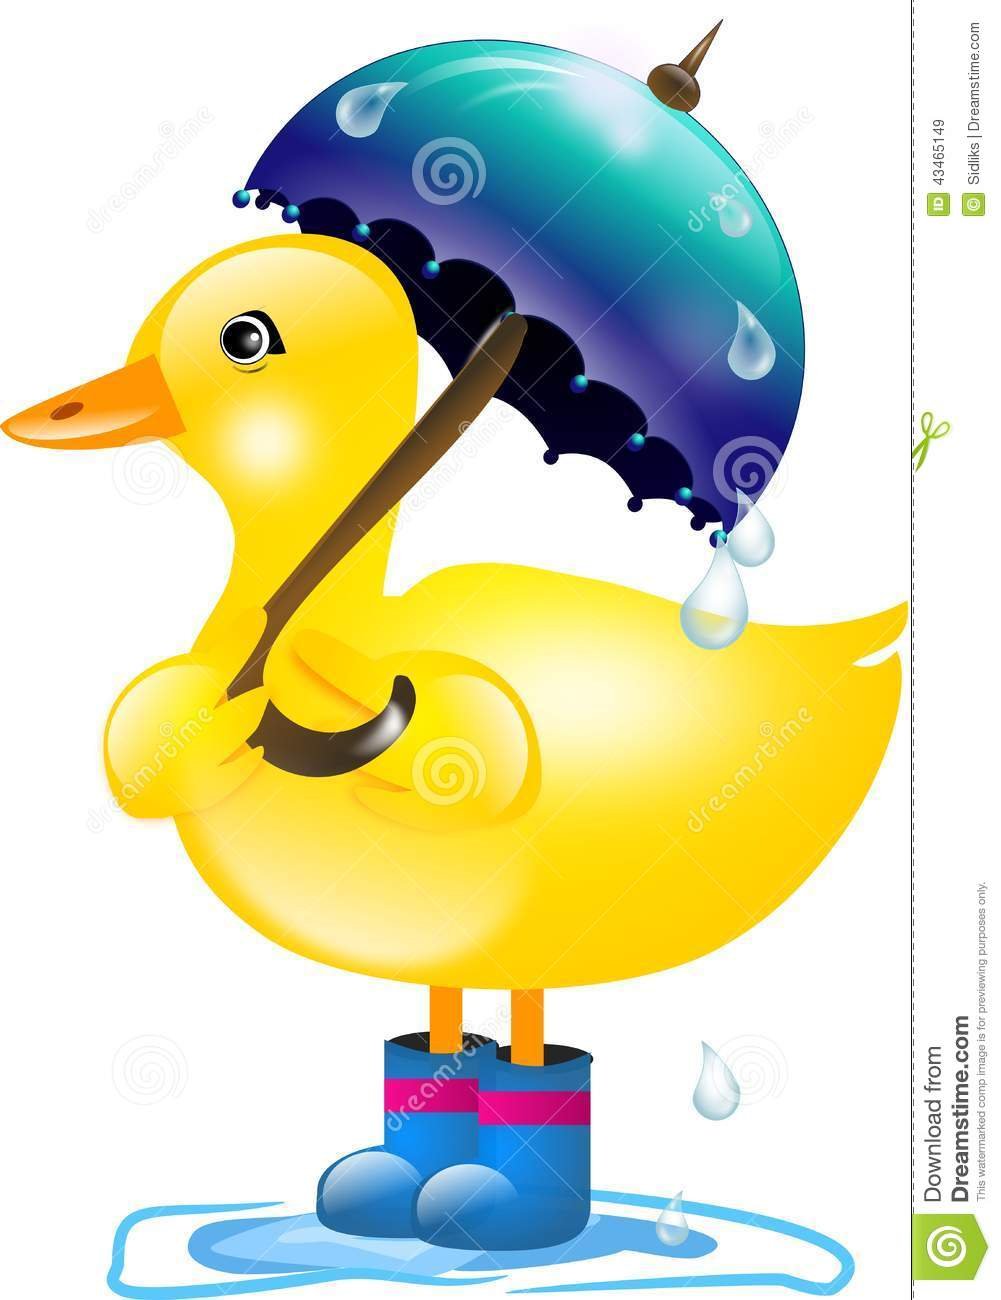 Yellow Duckling With Blue Umbrella In Rain